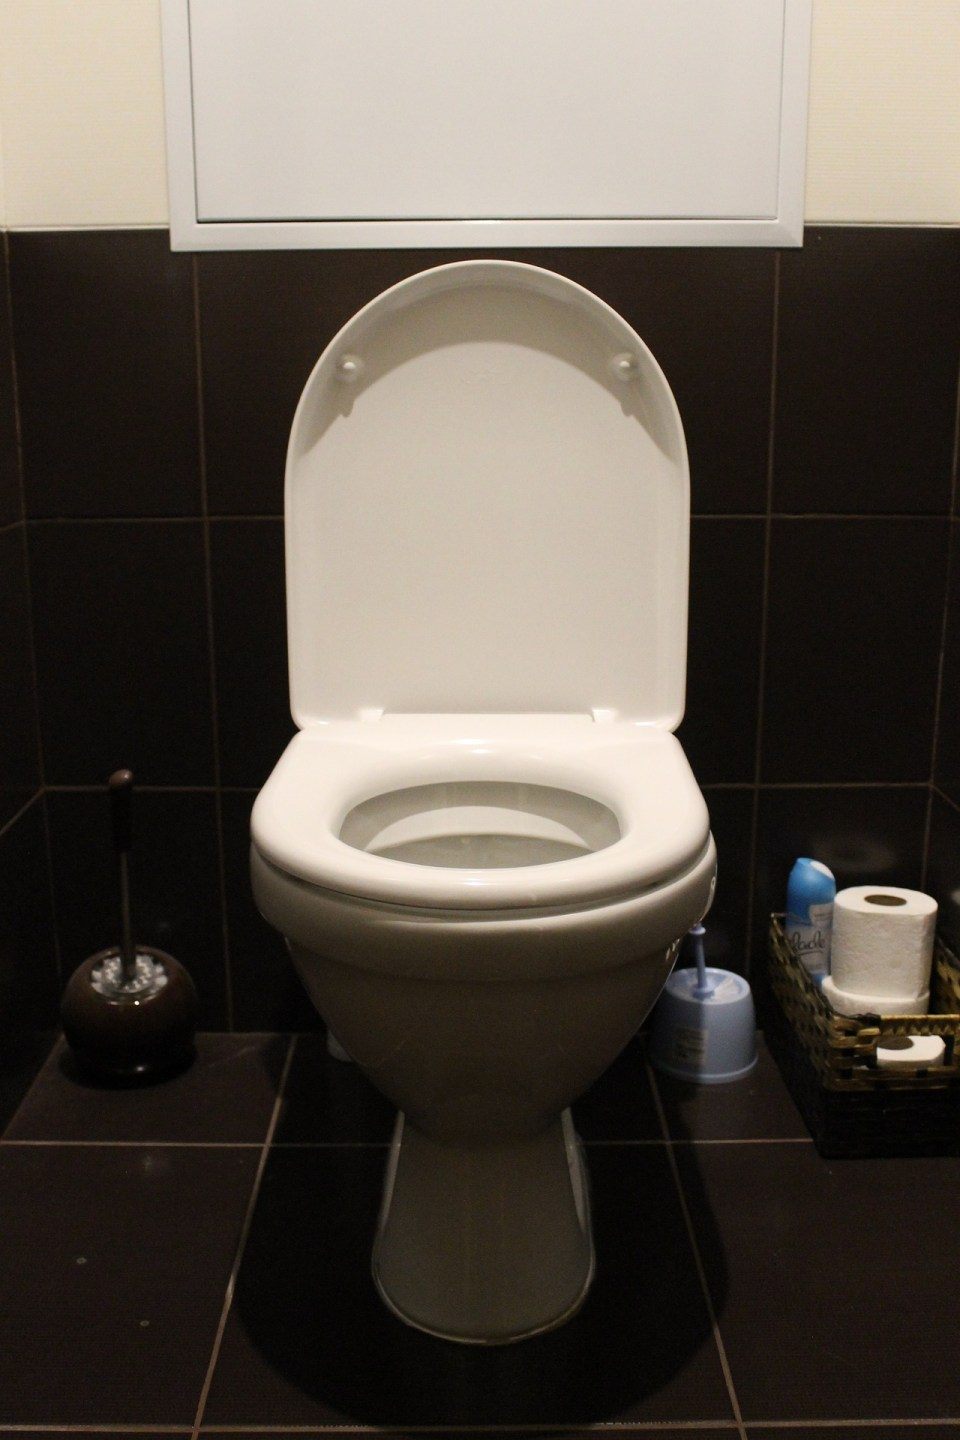 Where Does Your Poo Go?